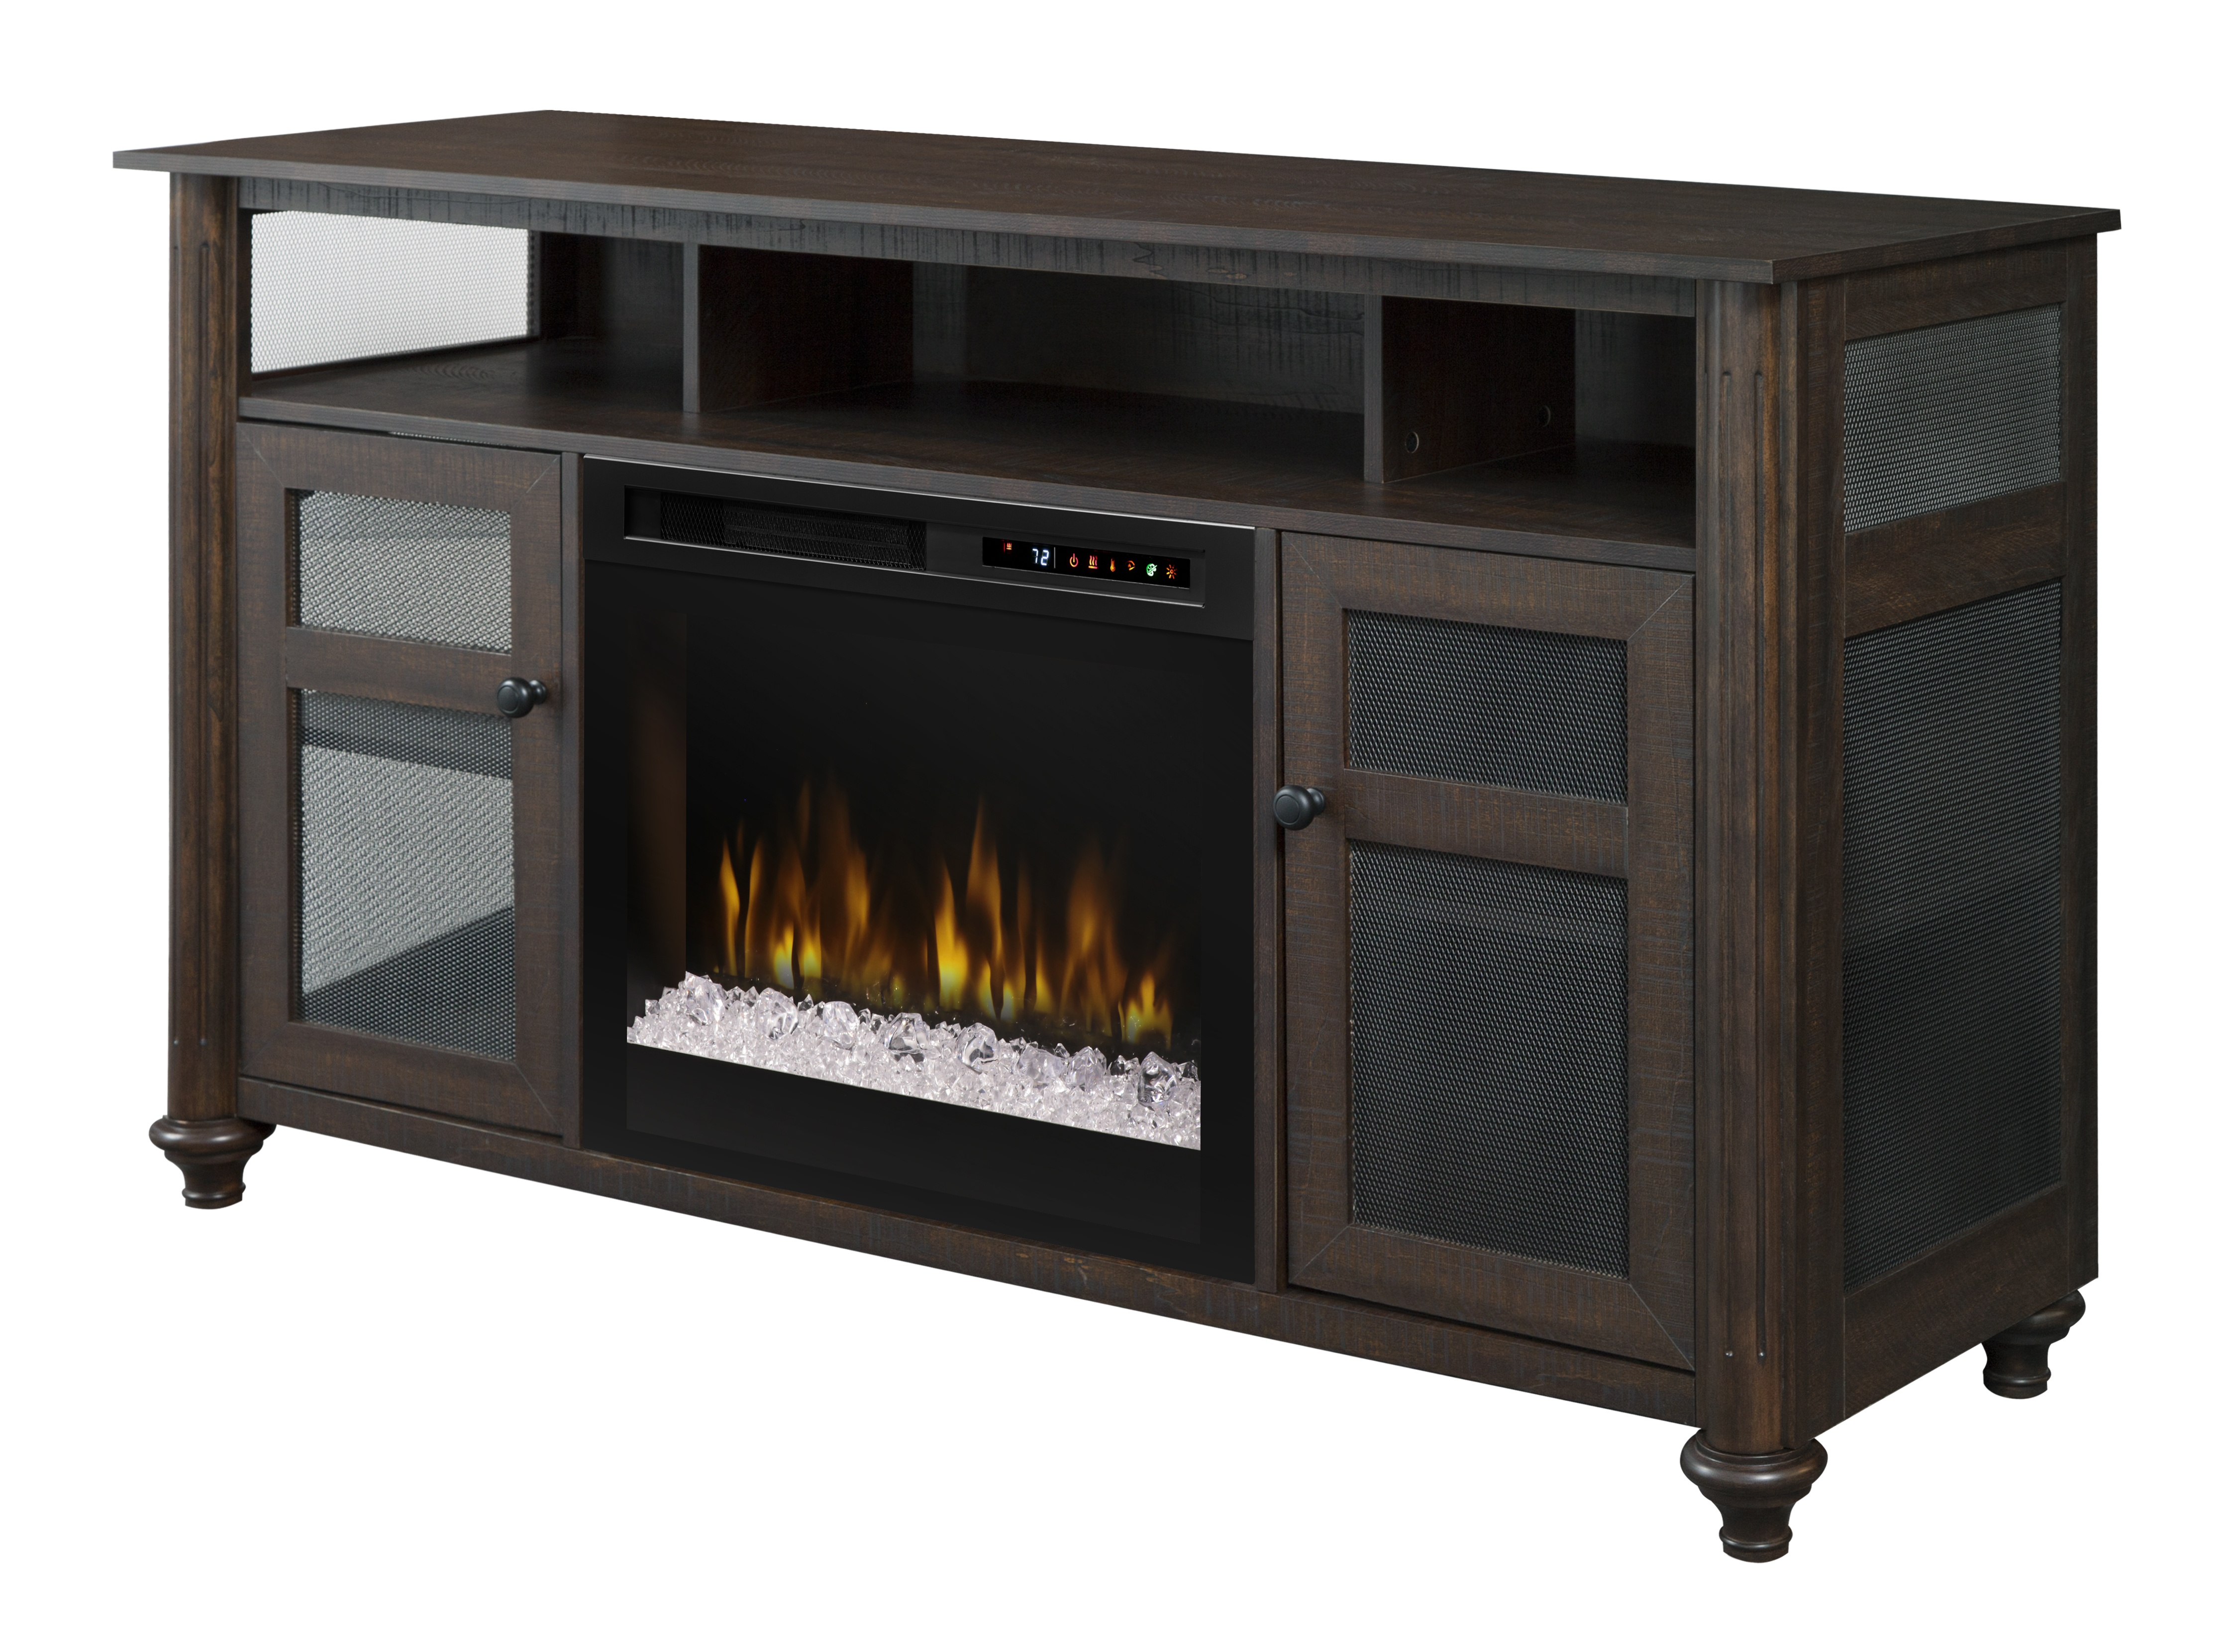 Dimplex xavier gds23g8 1904gb electric fireplace with - Going to bed with embers in fireplace ...